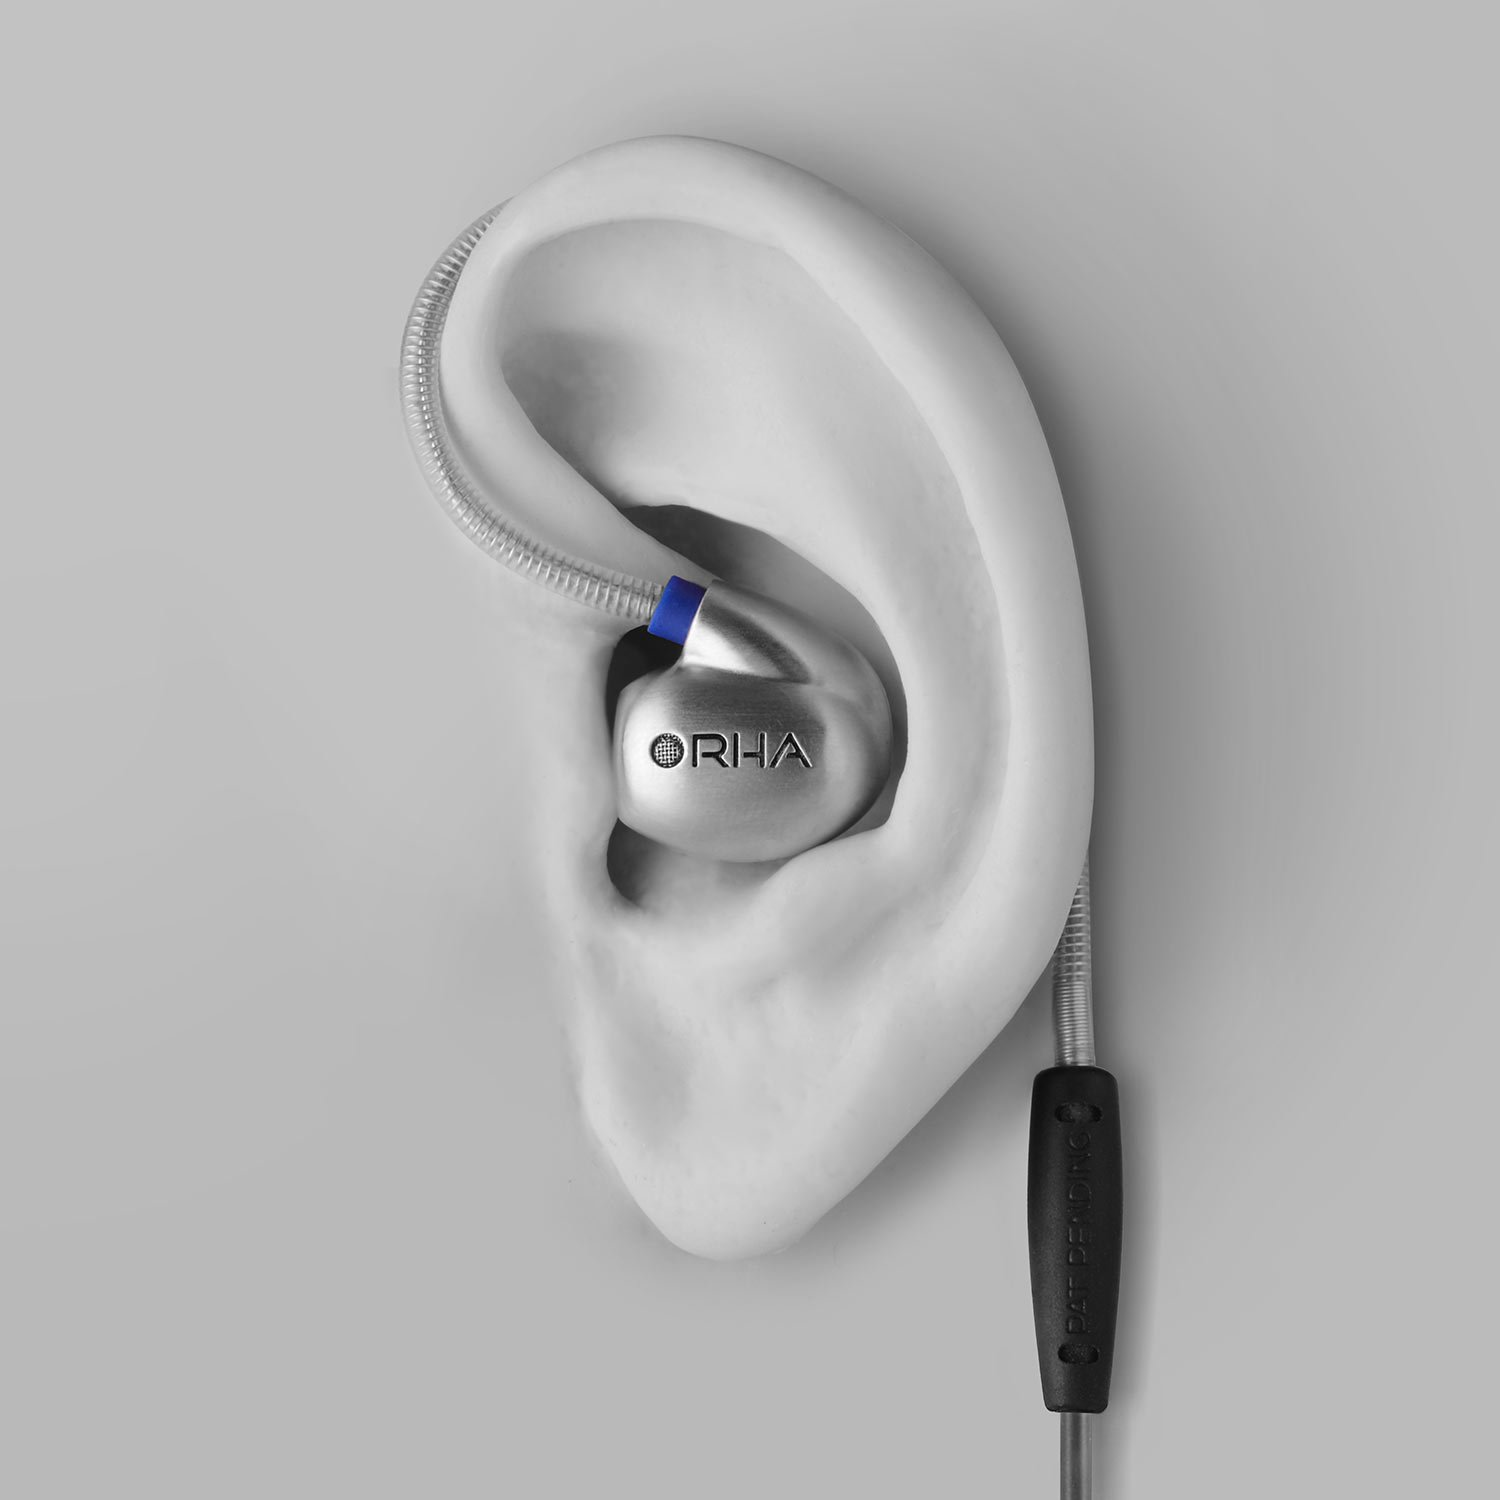 stainless-steel-earbuds-t10i-by-rha-9